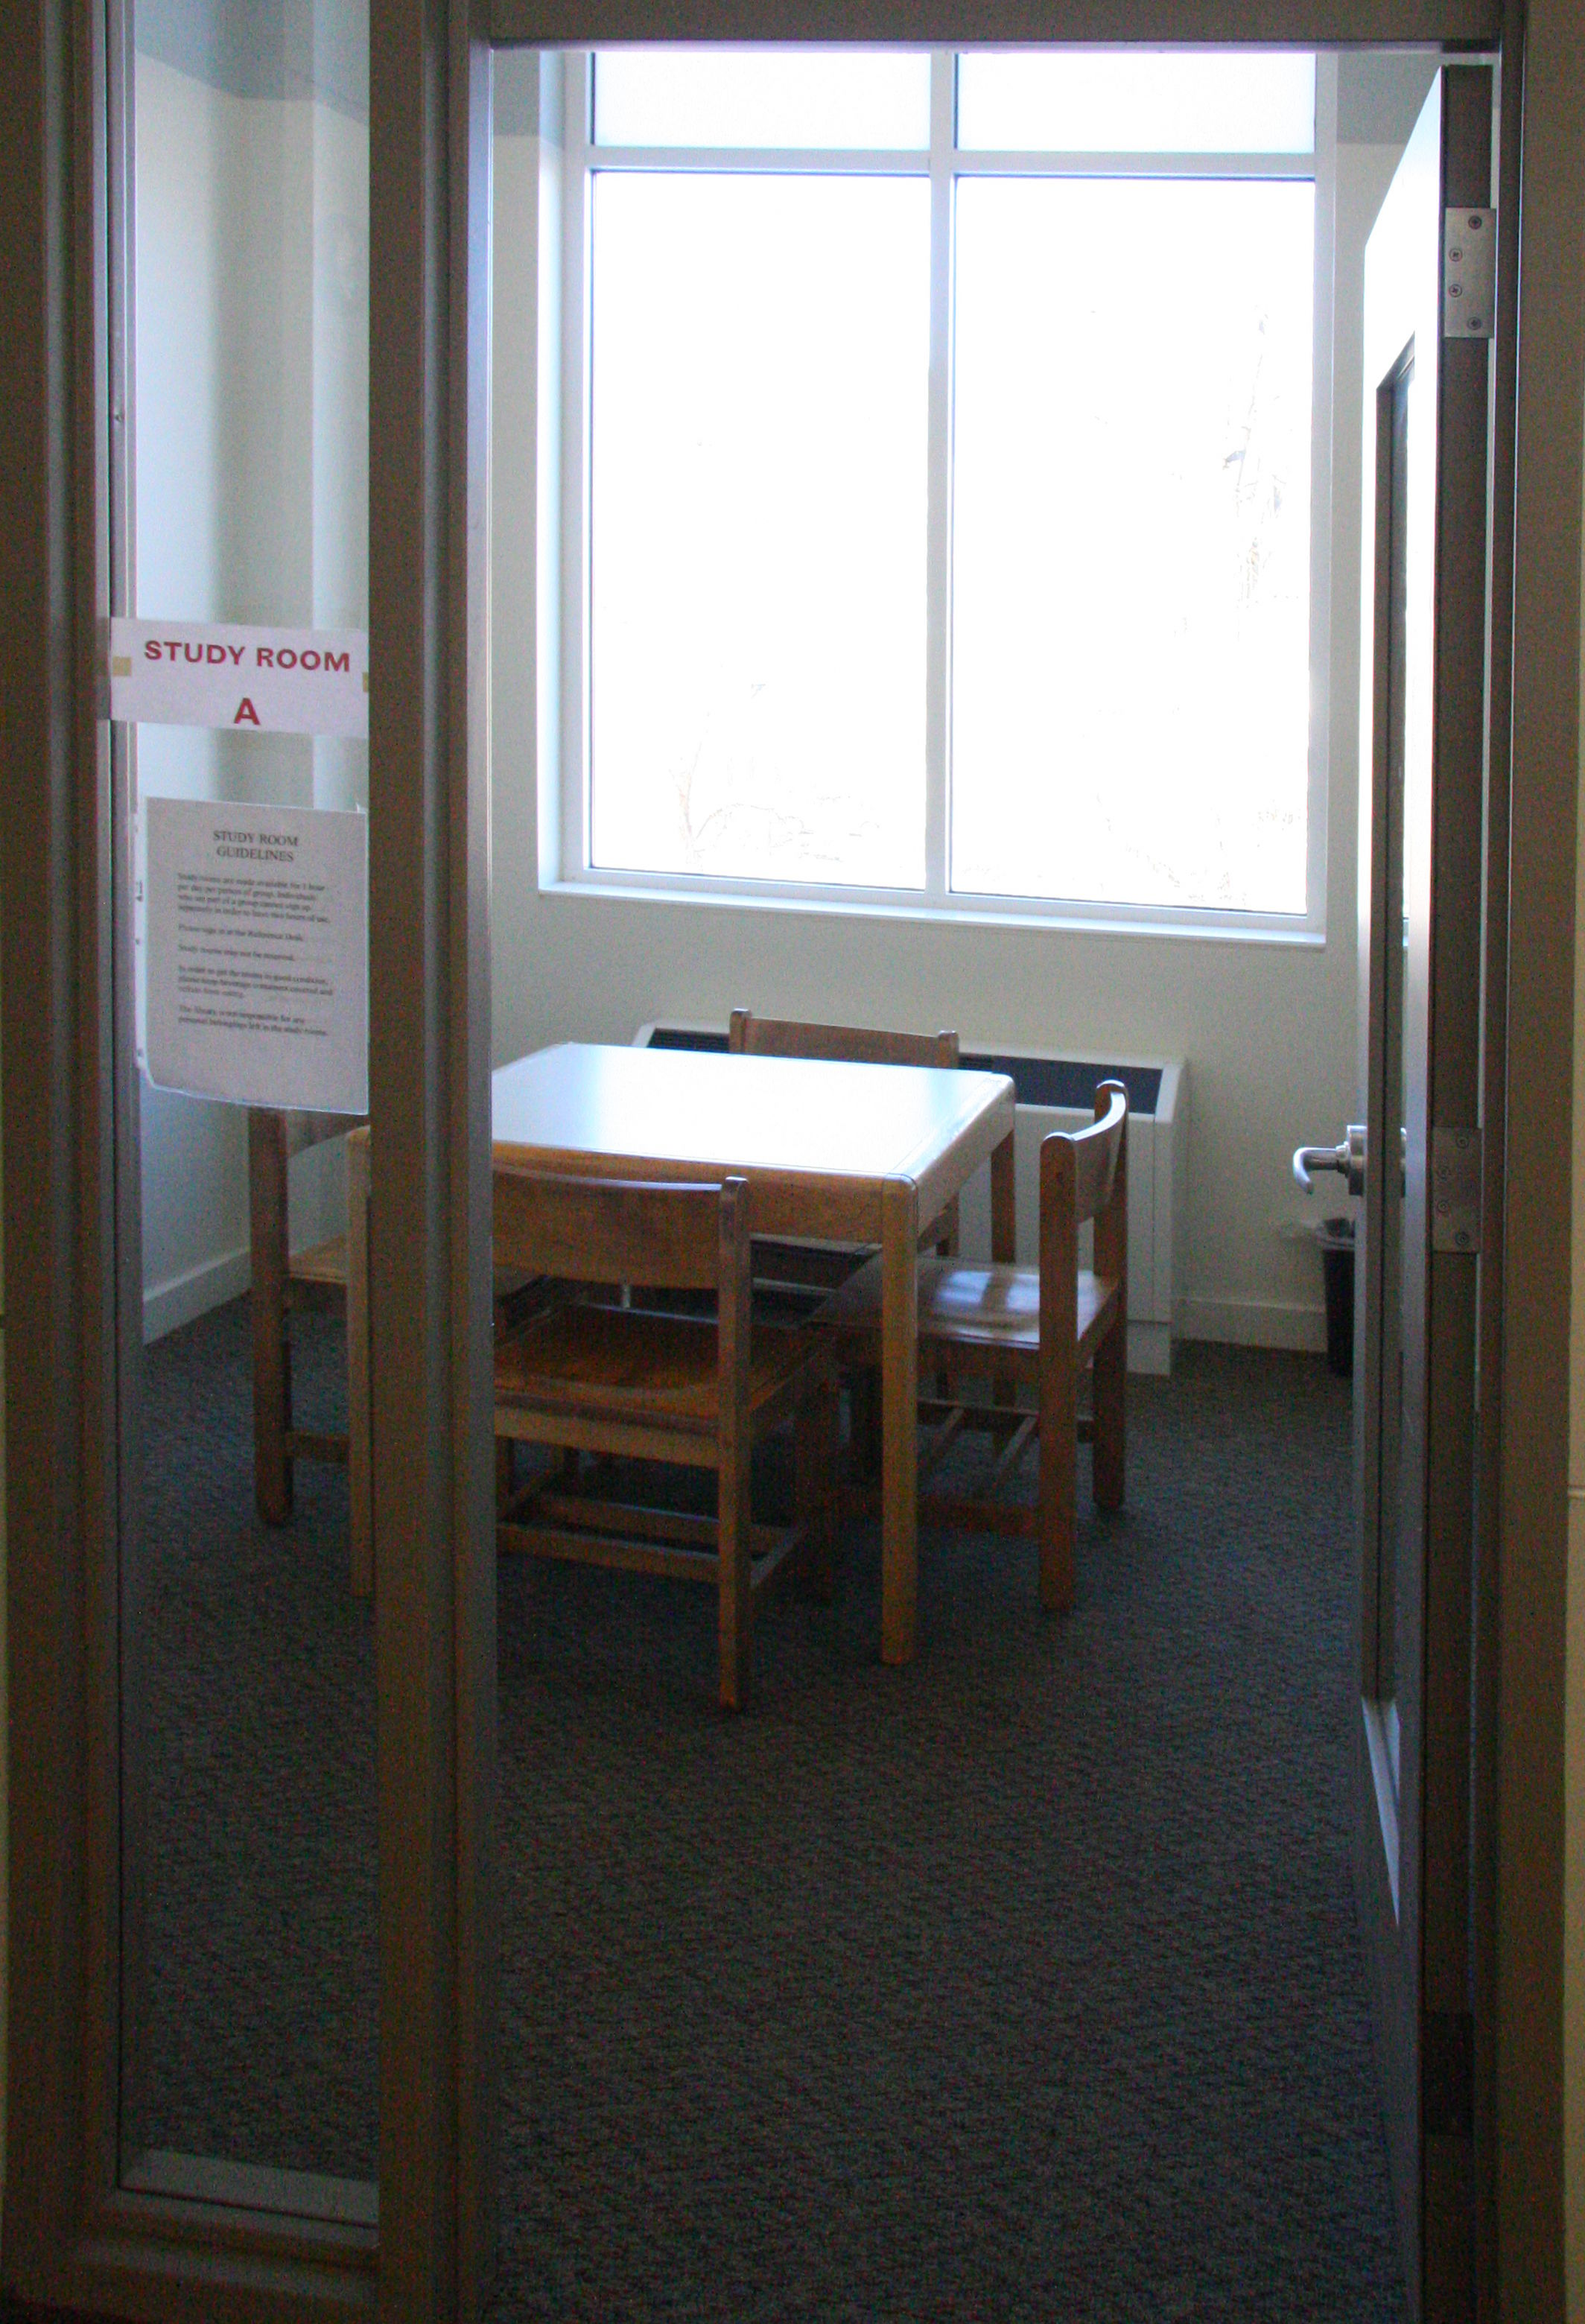 The Mount Kisco Public Library Study Room